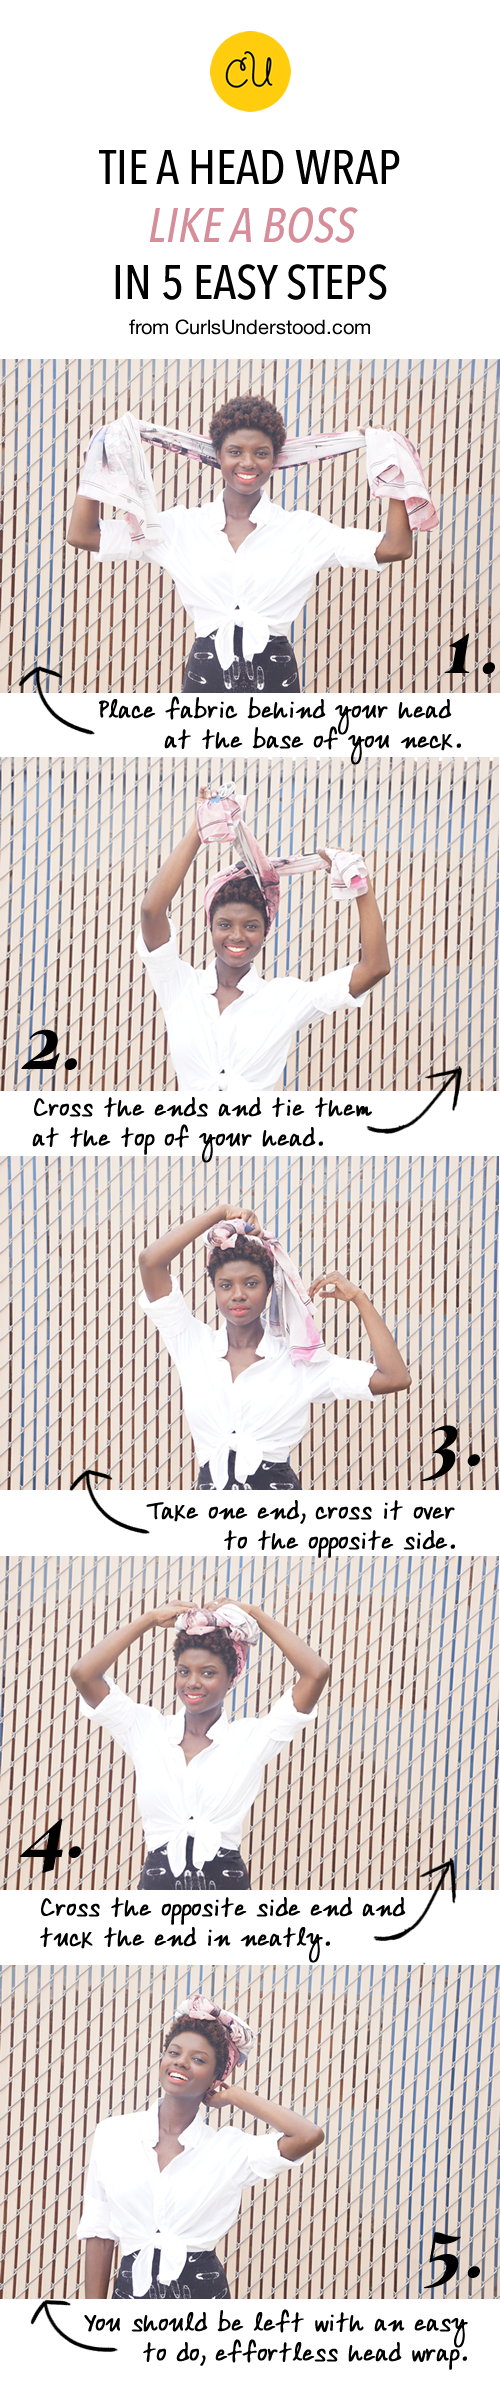 how to tie a headwrap